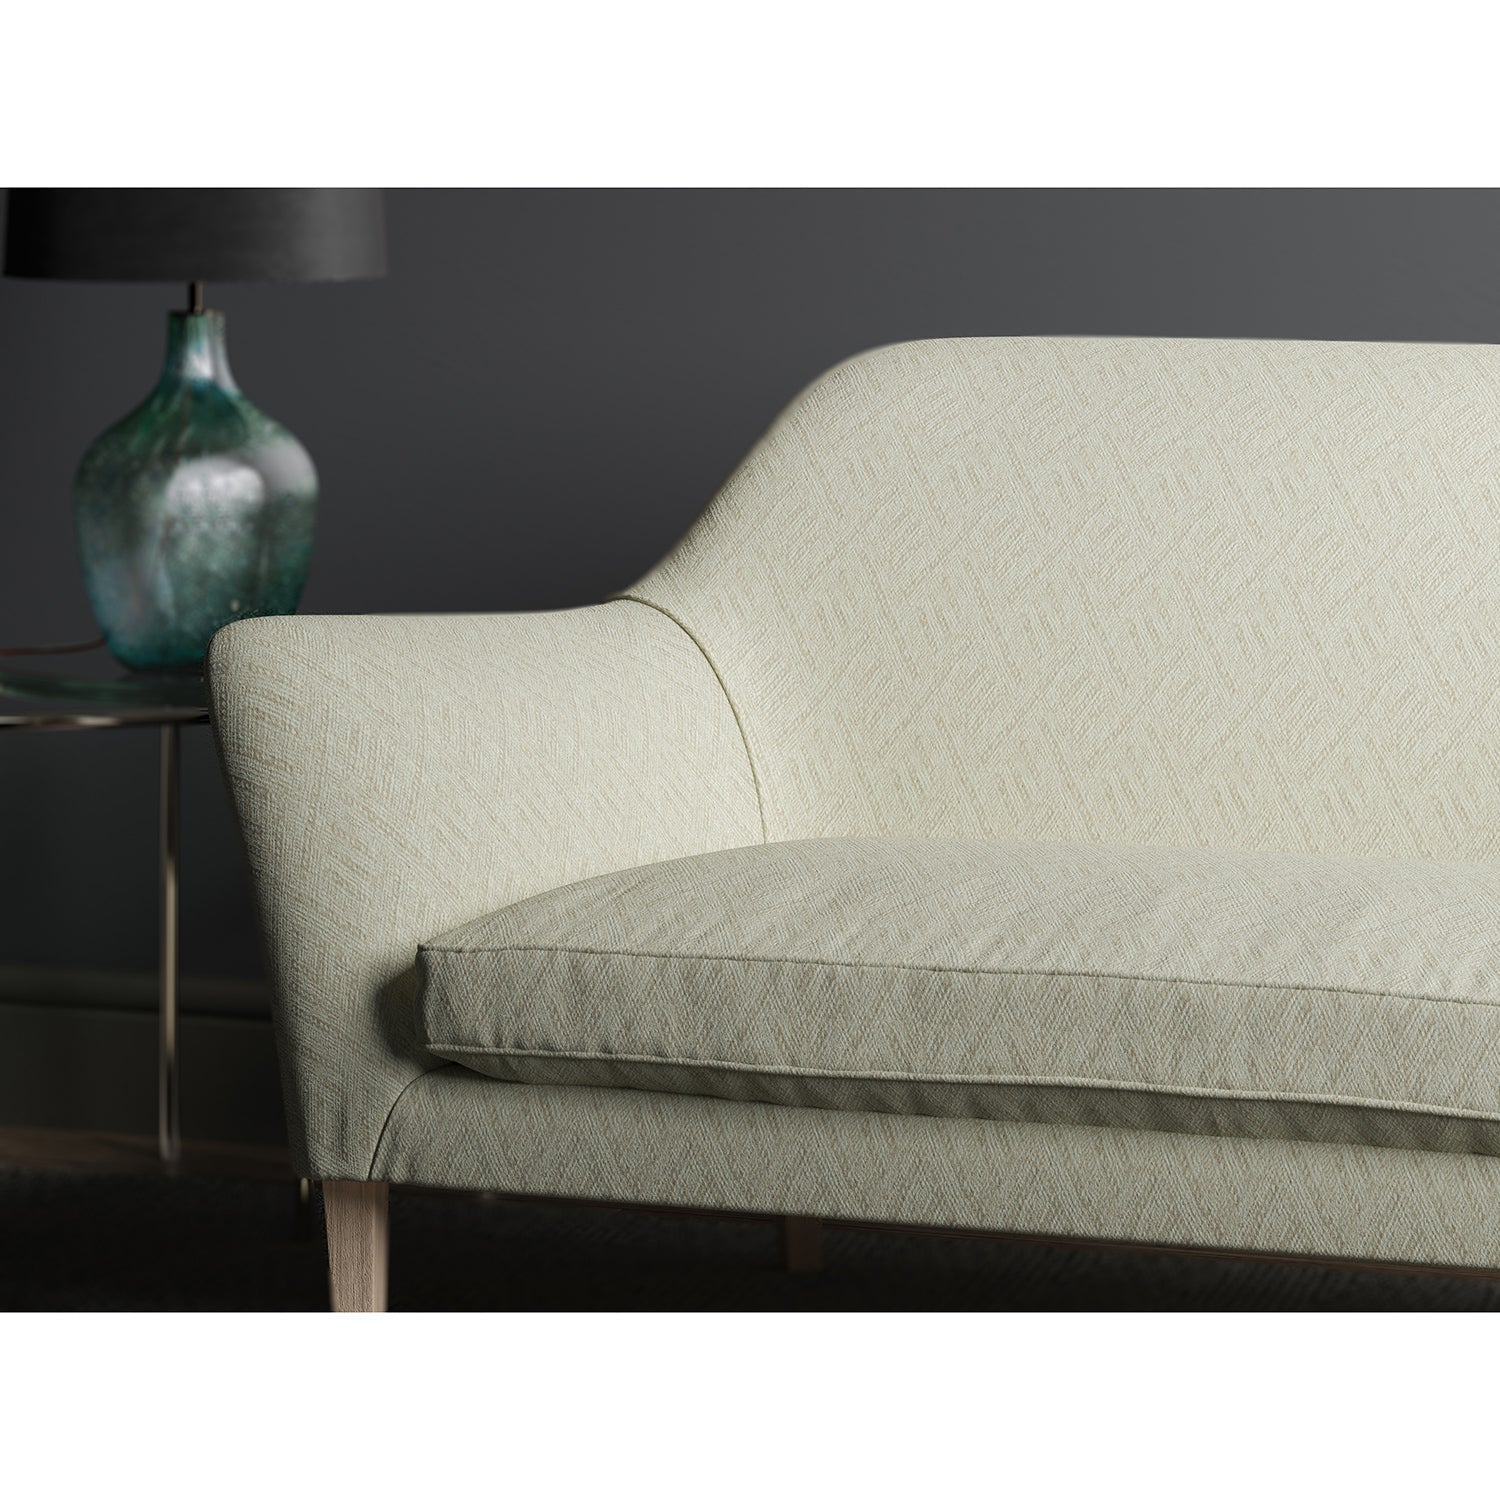 Sofa in design name Rumba, colourway Natural from the Tango Weaves collection